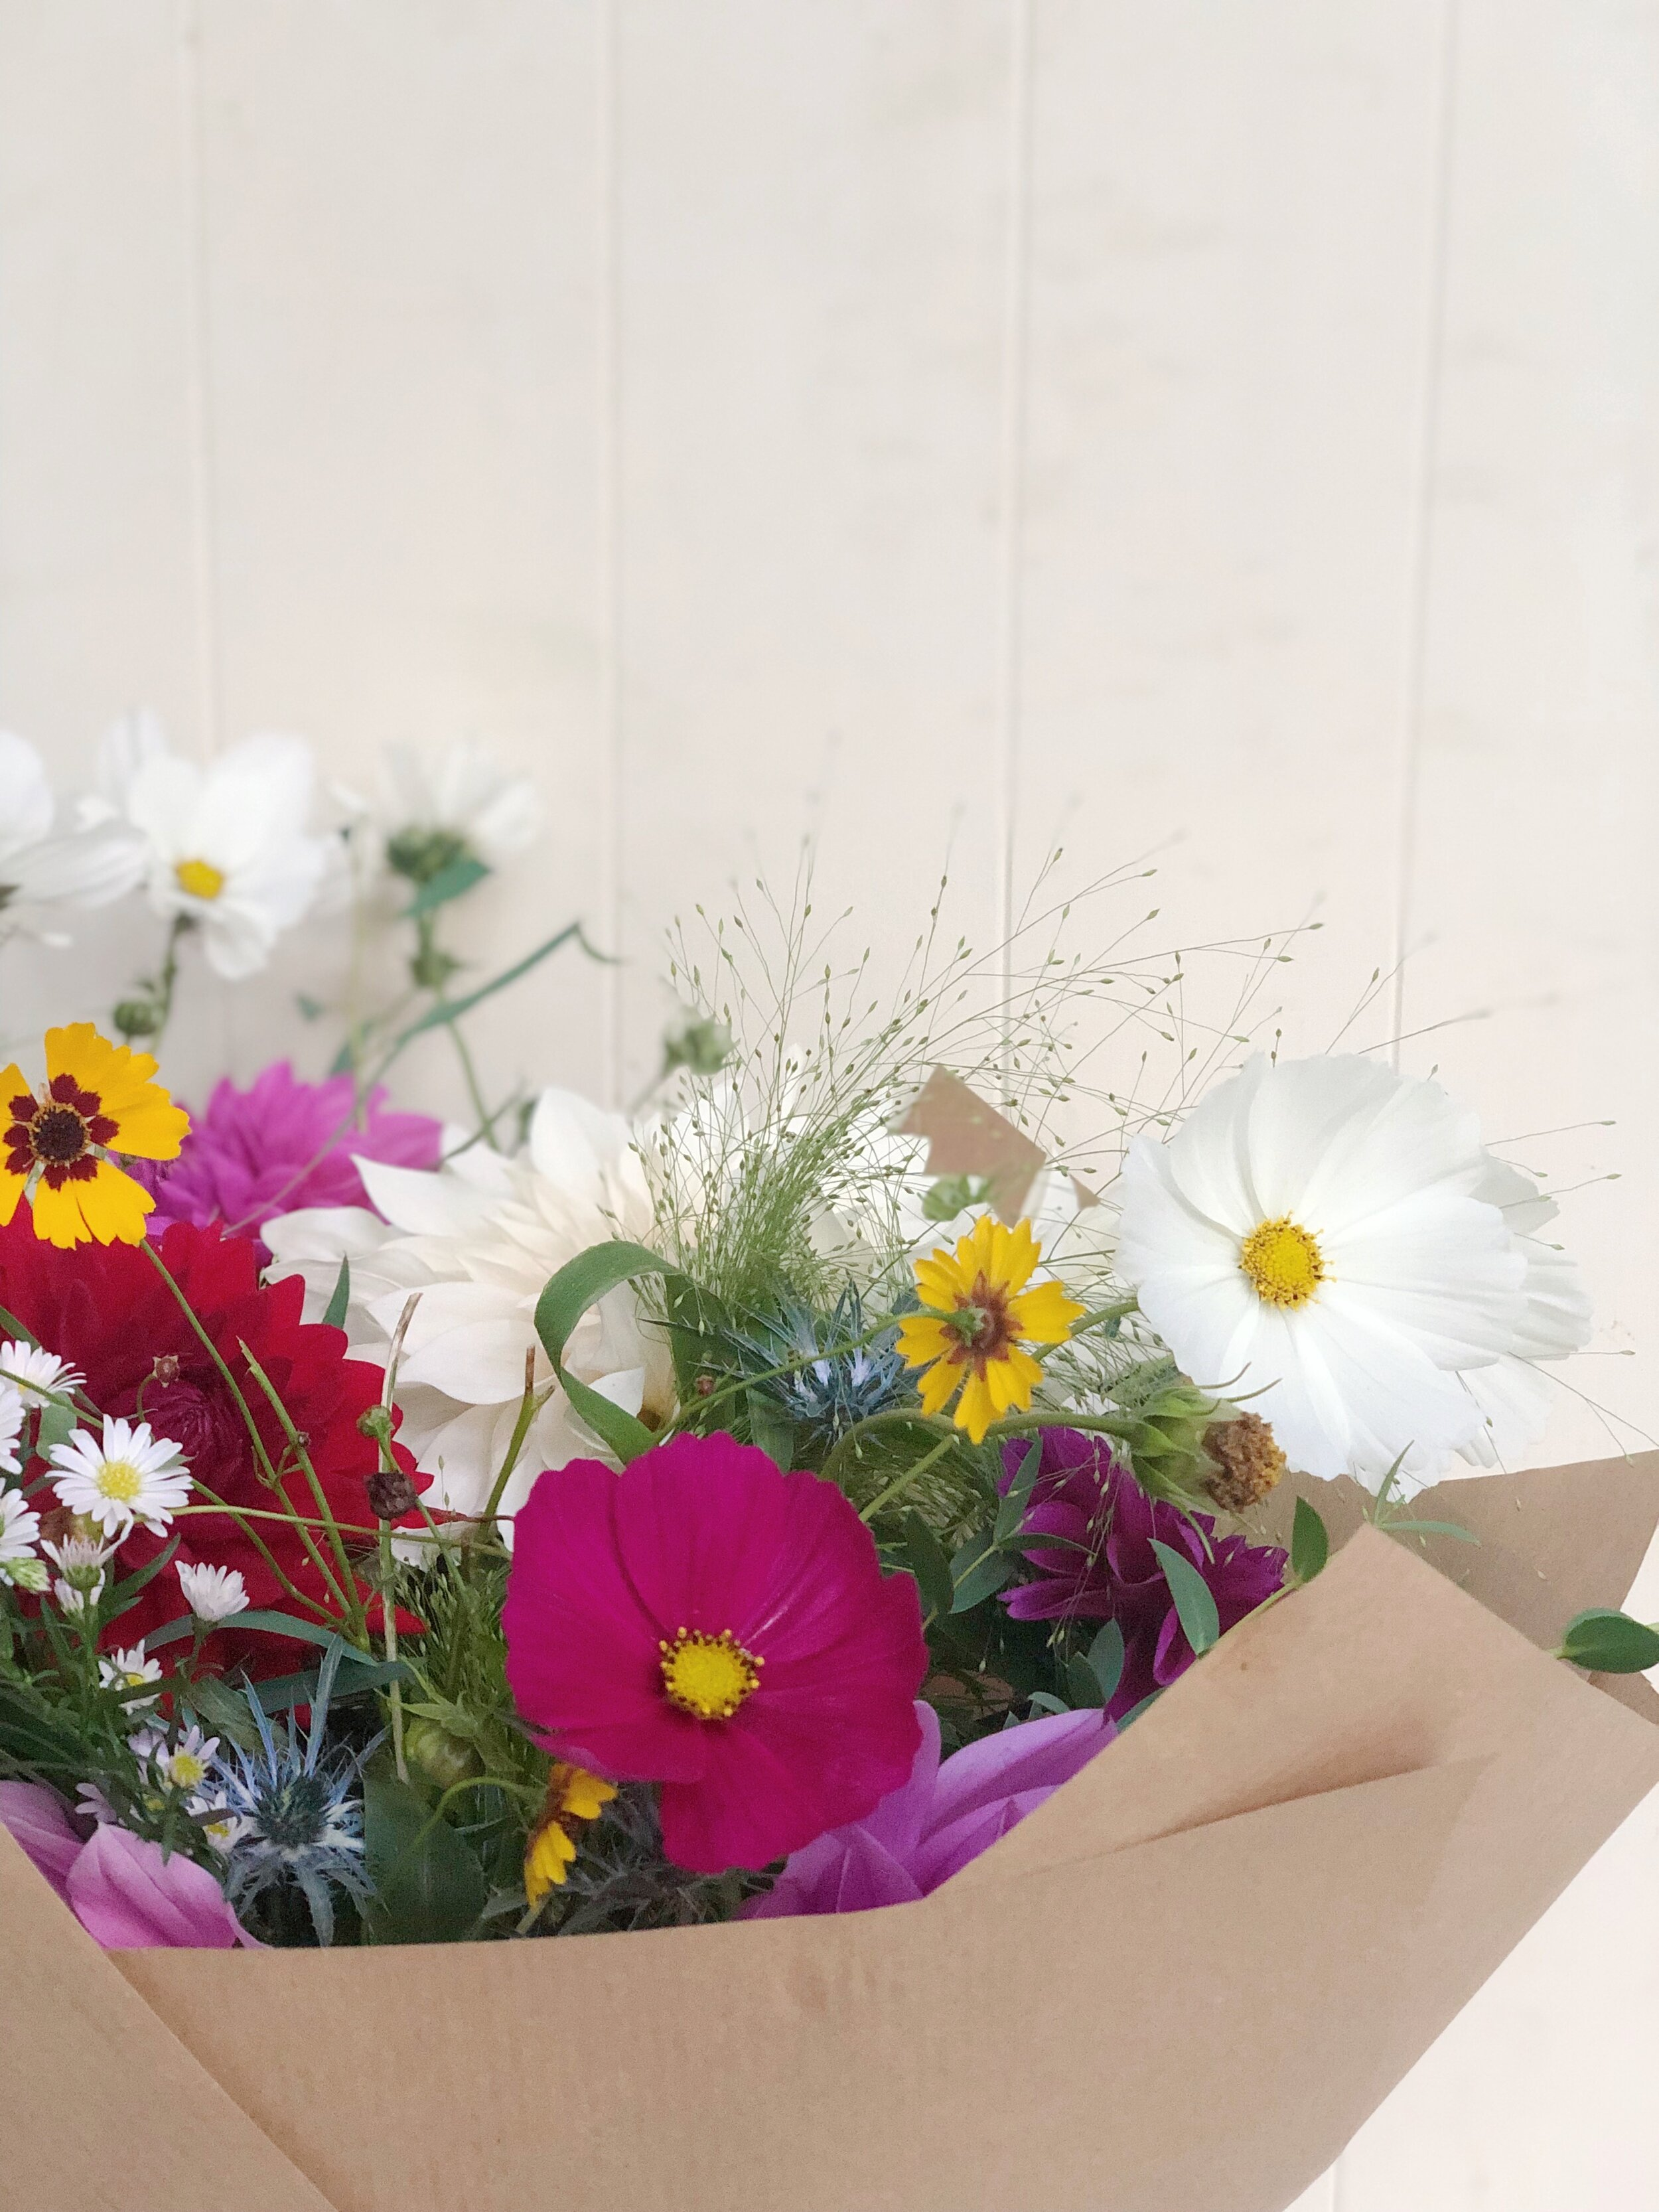 Subscription Flowers - We also offer a weekly flower subscription for those who must have flowers often.Minimum four-week subscription. Delivery included.Each week - £45Three month subscription - £520